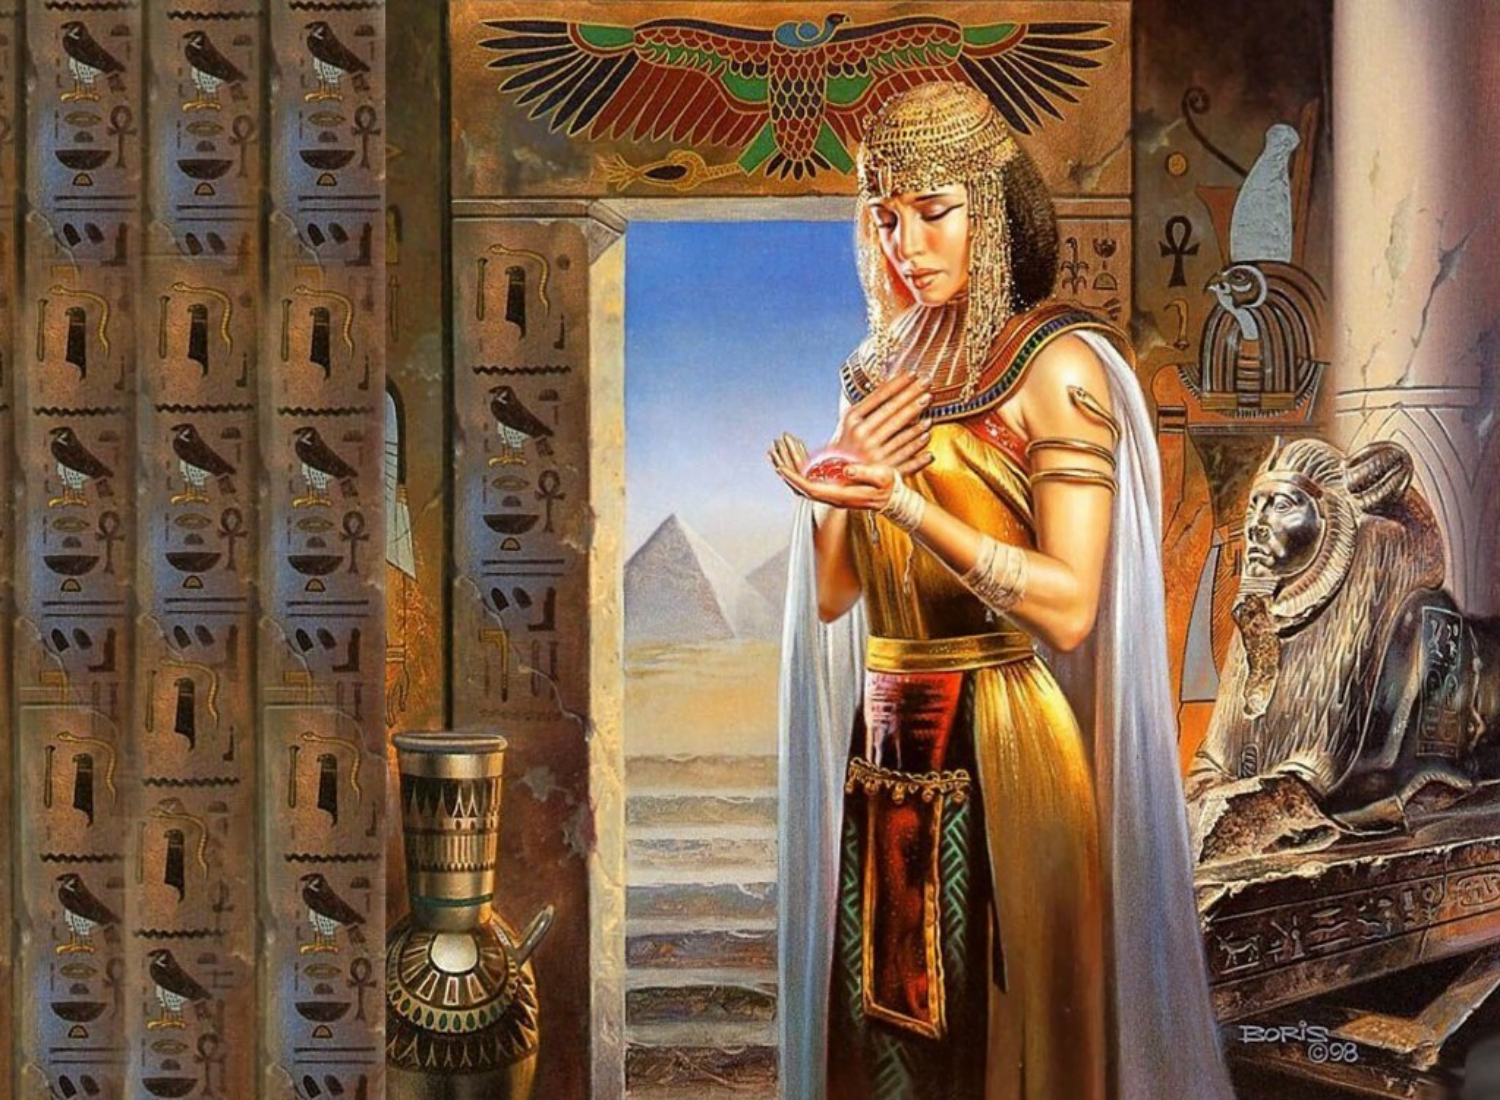 legend of maat